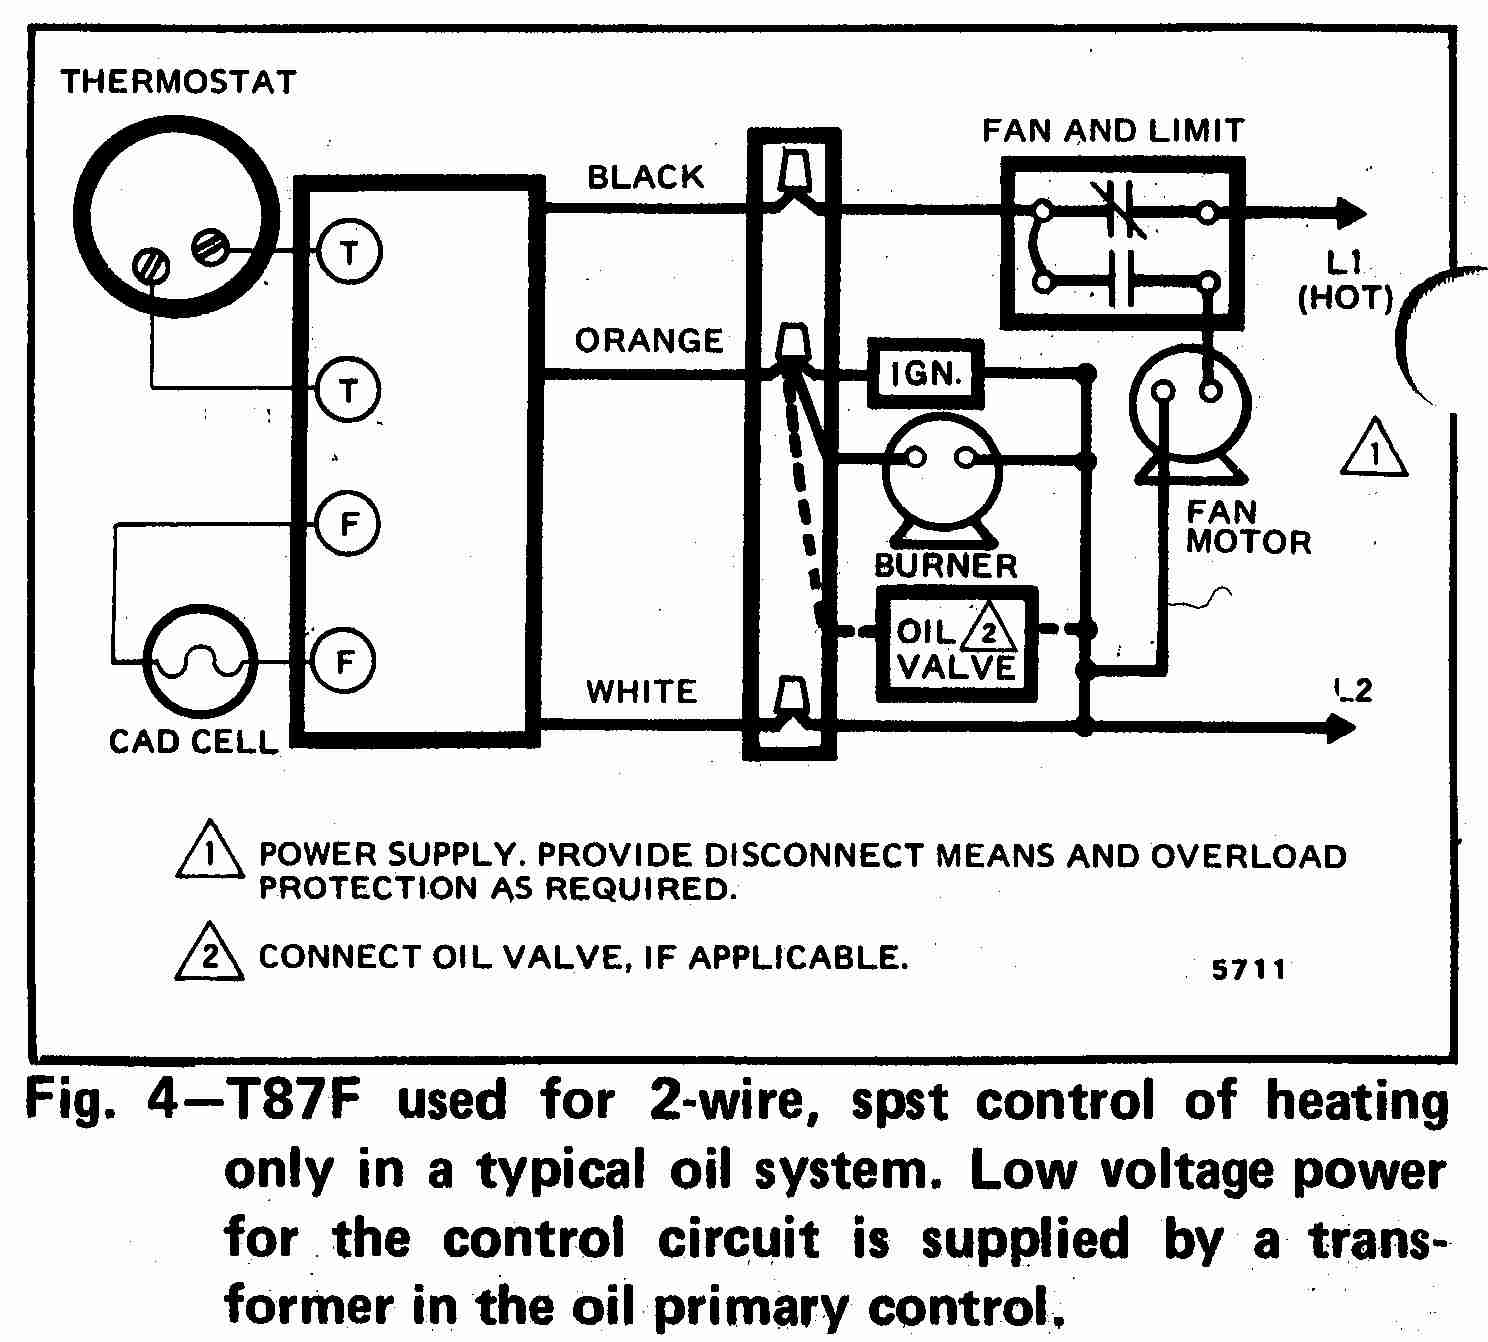 Ranco Aquastat Wiring Diagram Great Engine Schematic Boiler Temperature Control Diagrams Just Another Blog U2022 Rh Easylife Store